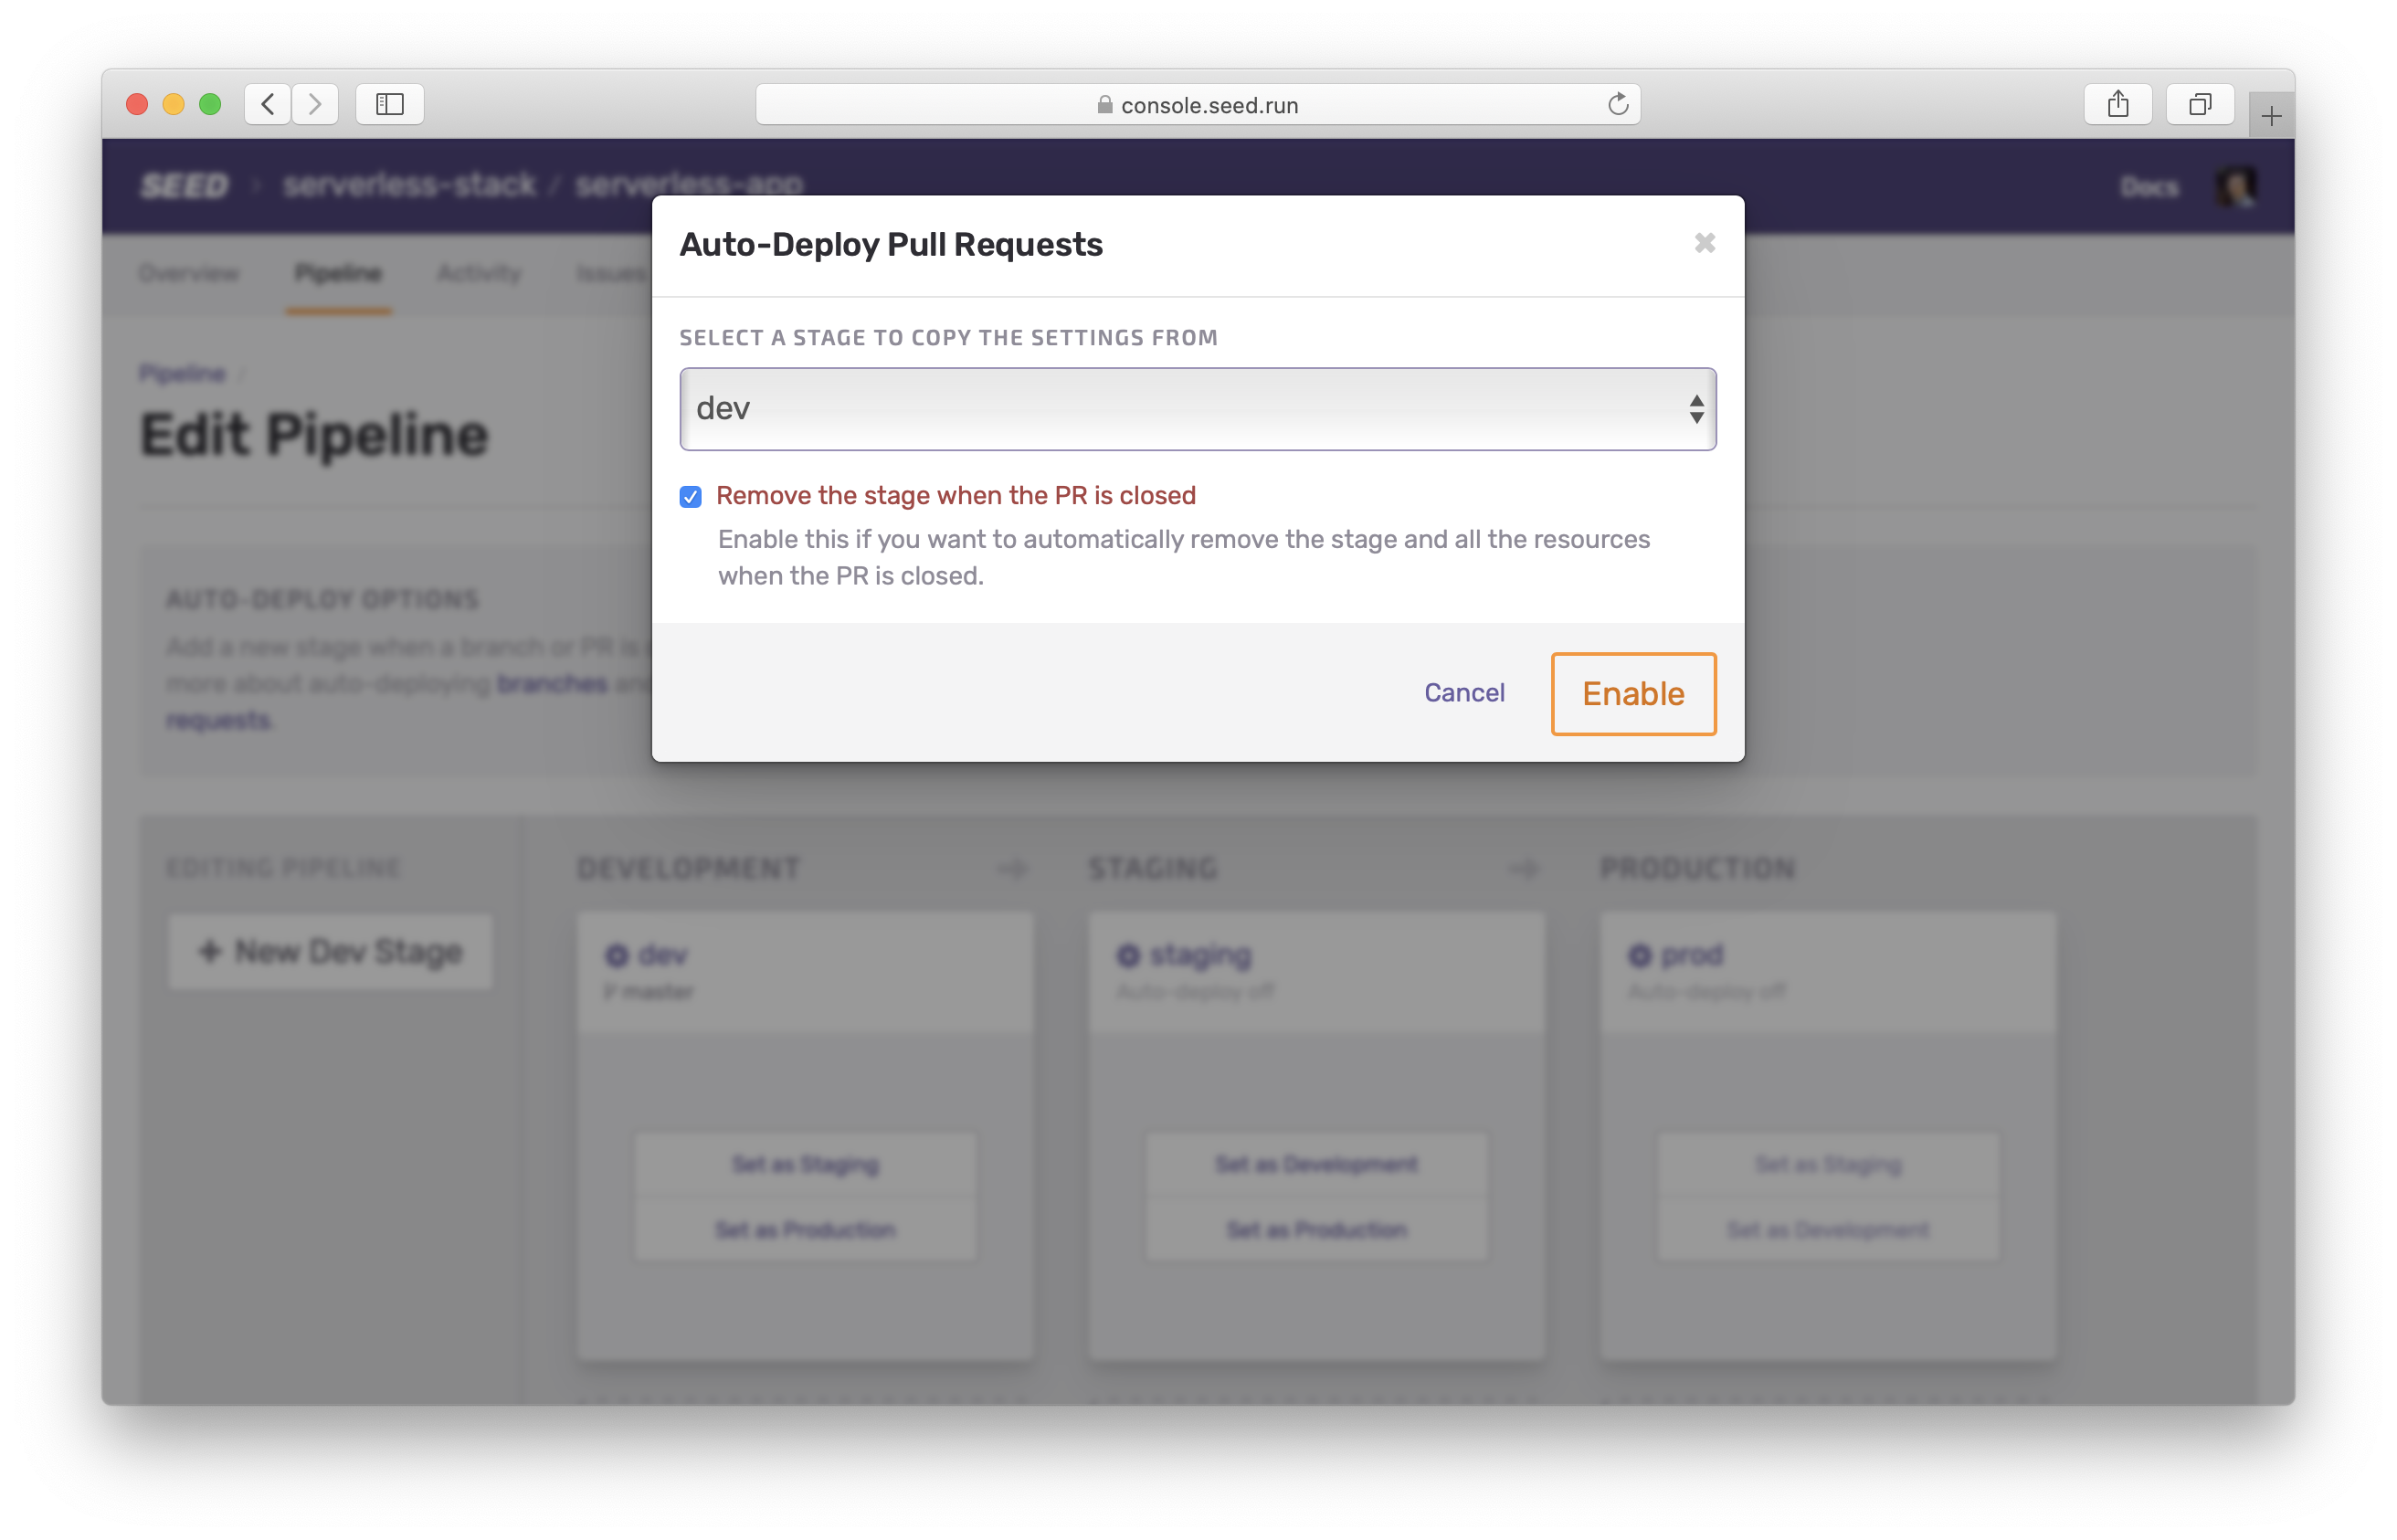 Auto-deploy pull request options